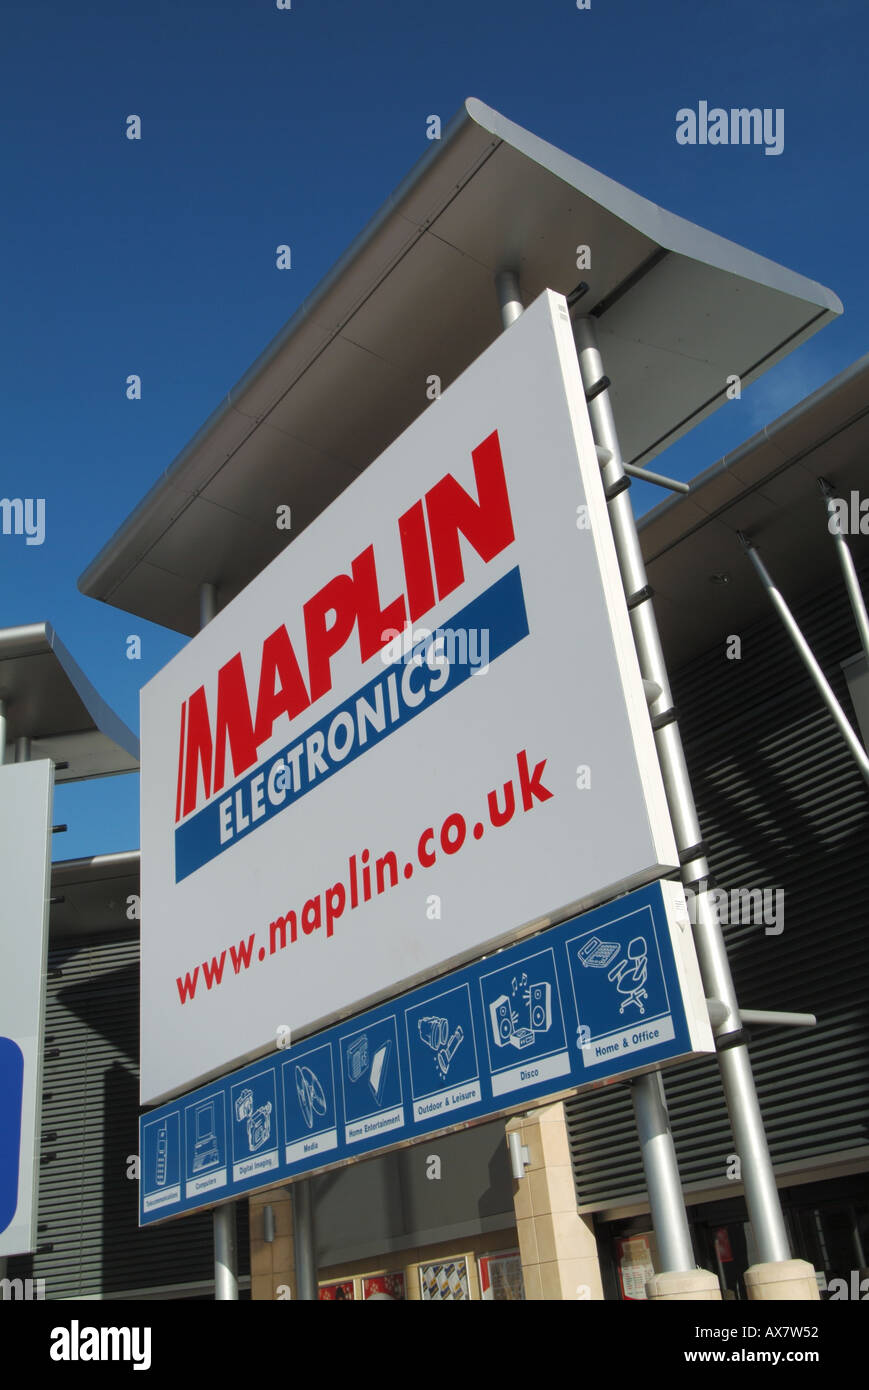 West Thurrock Lakeside retail park with Maplin Electronics store sign incorporating web site address - Stock Image